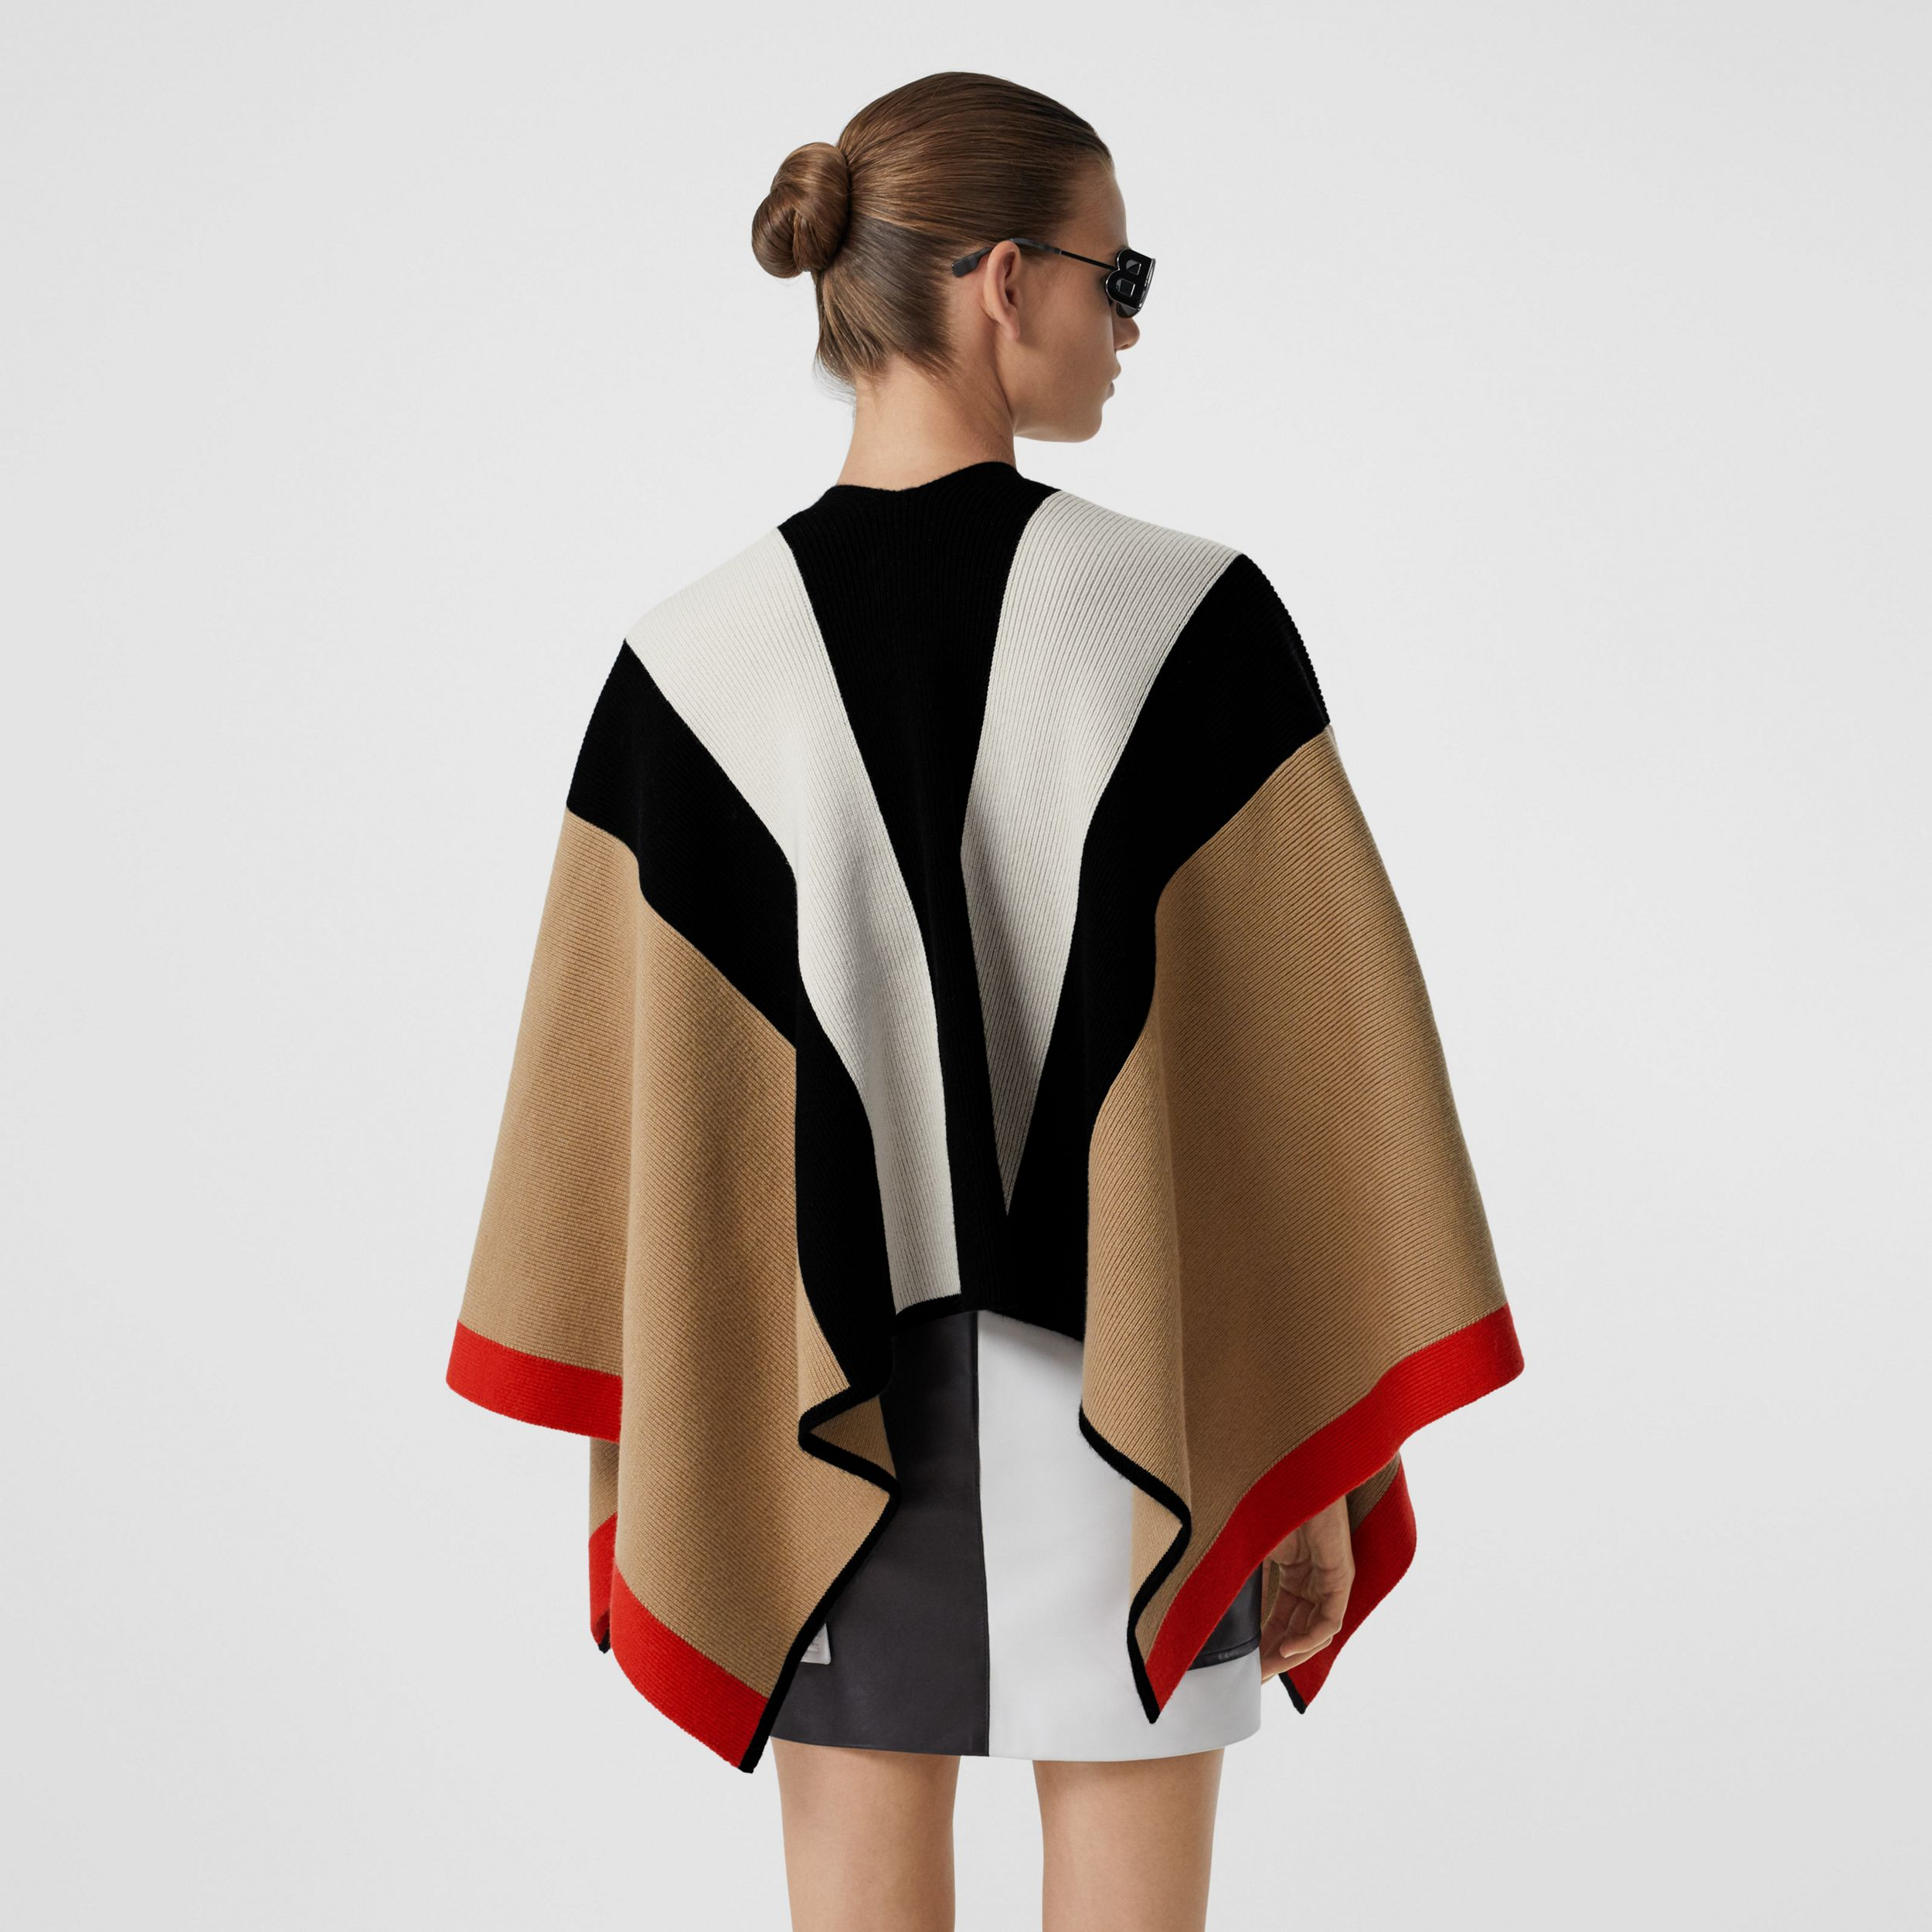 Striped Wool Cashmere Cape in Archive Beige - Women | Burberry - 3